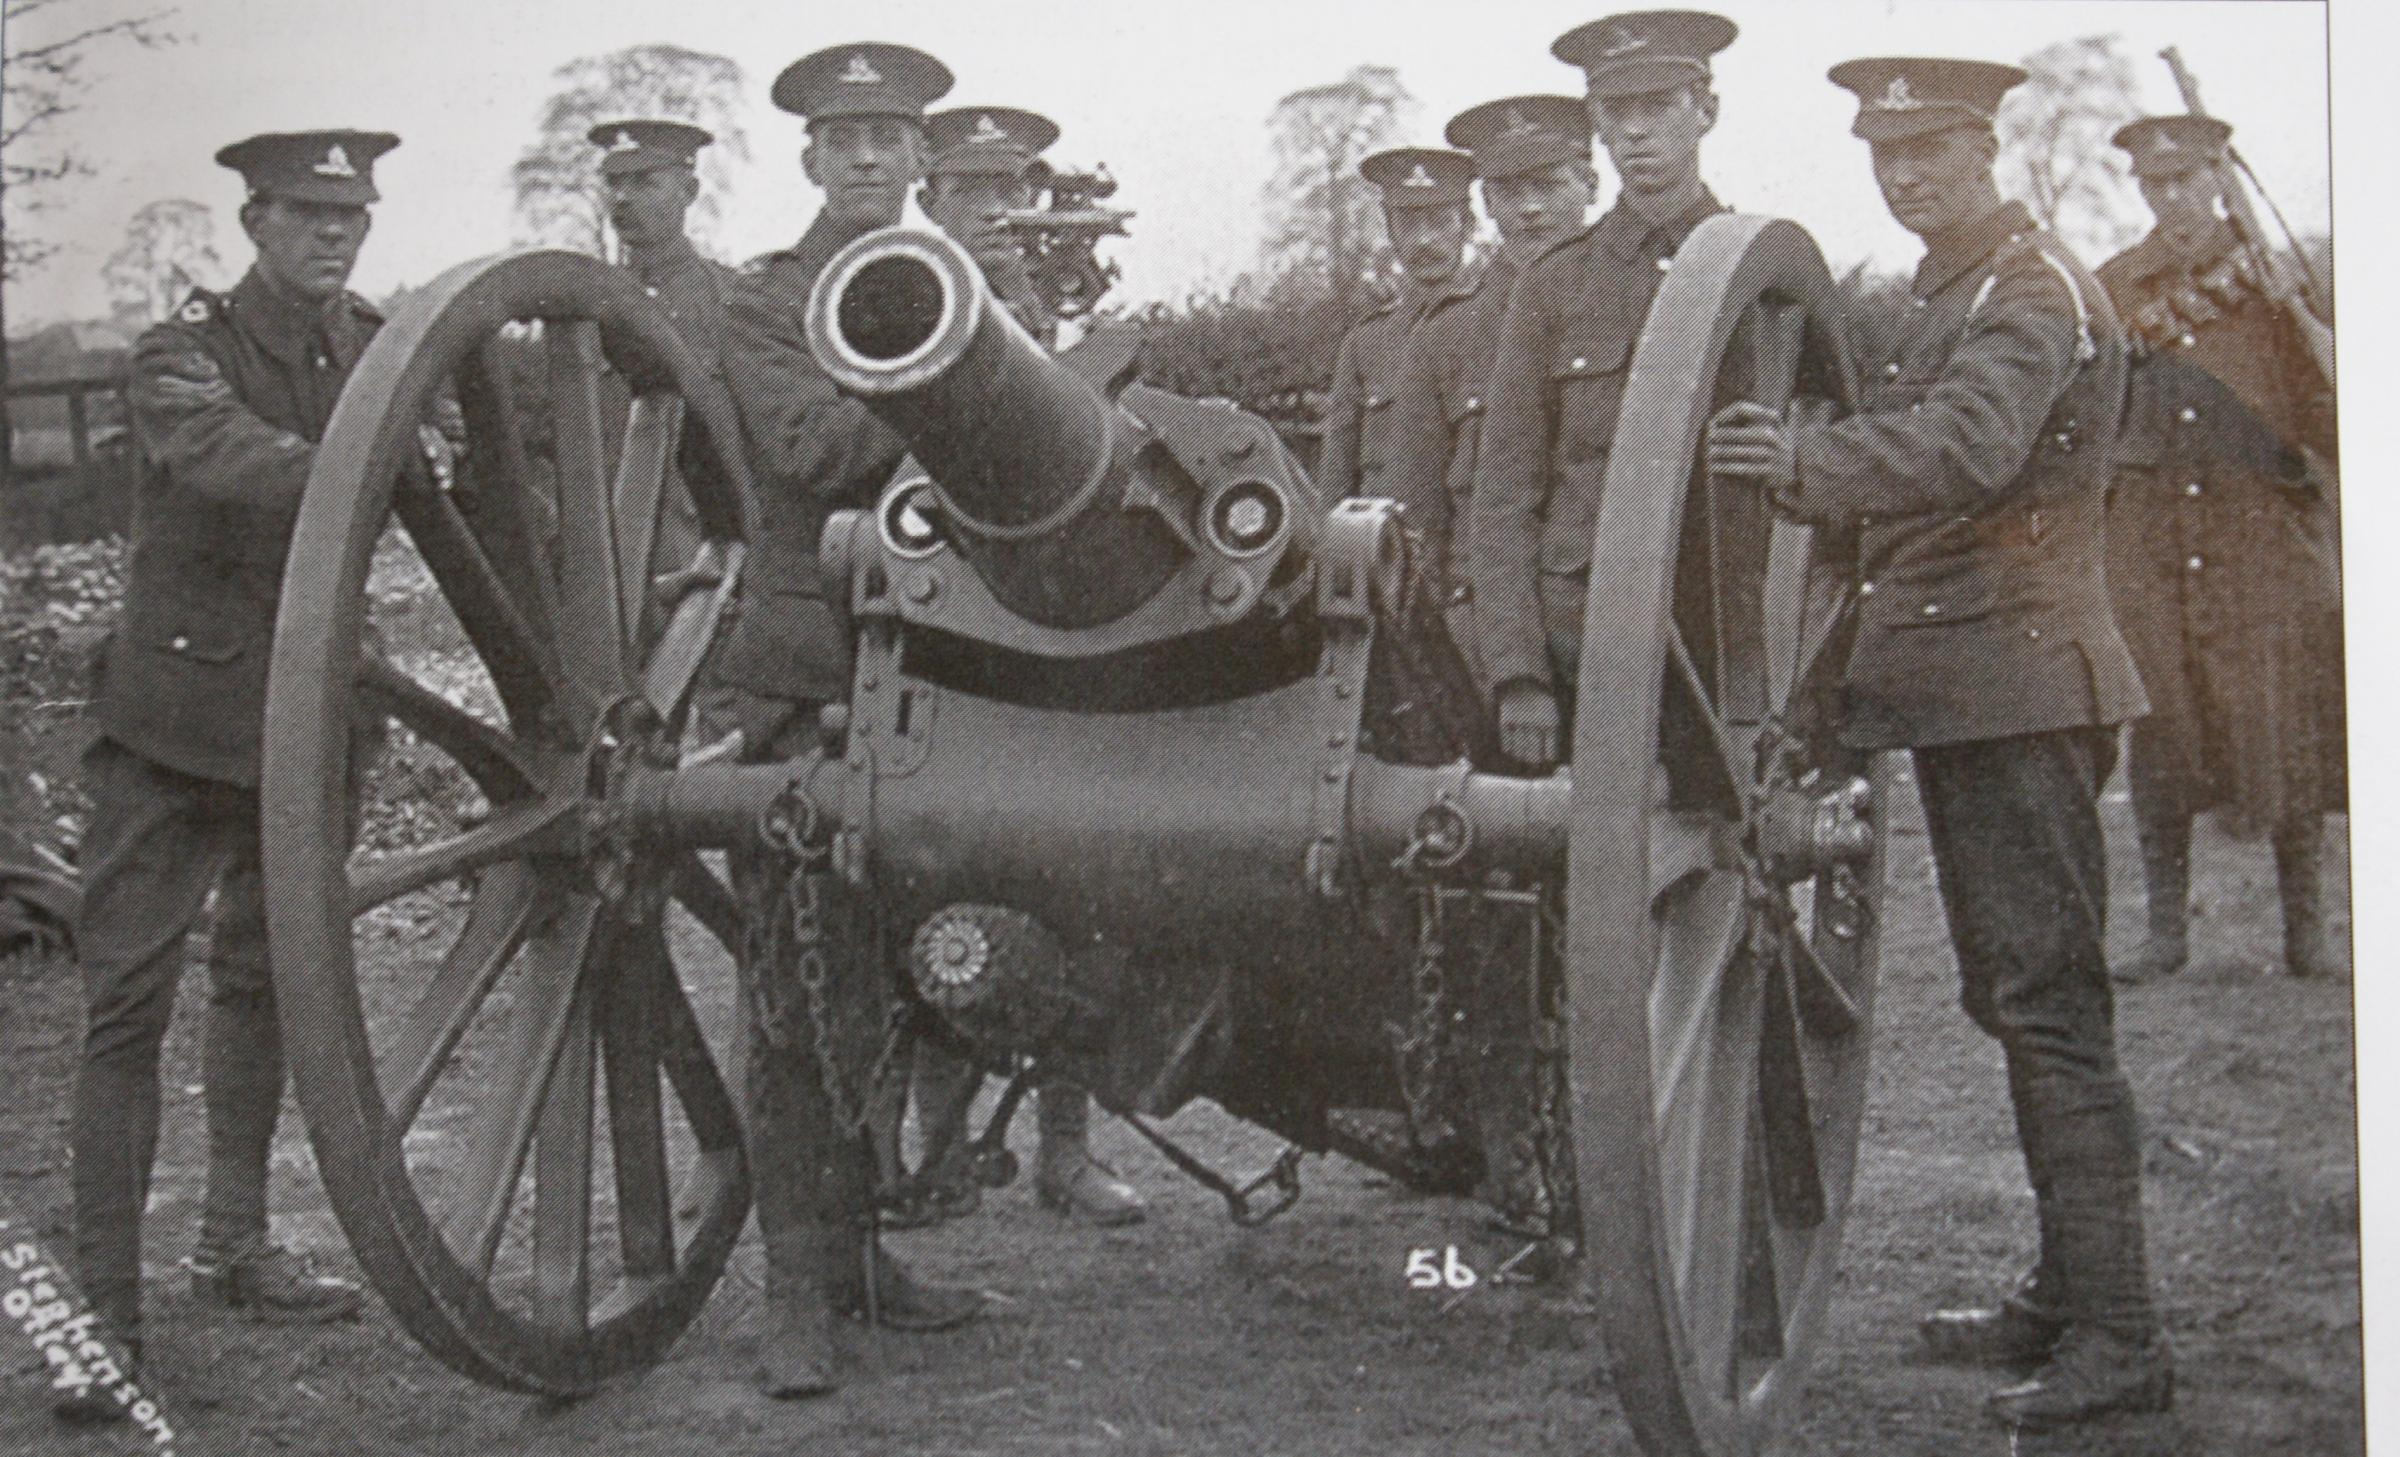 Members of the 4th West Riding Howitzer Brigade with 5 inch Howitzer known as the Boer War gun, used on the Ypres front, 1915